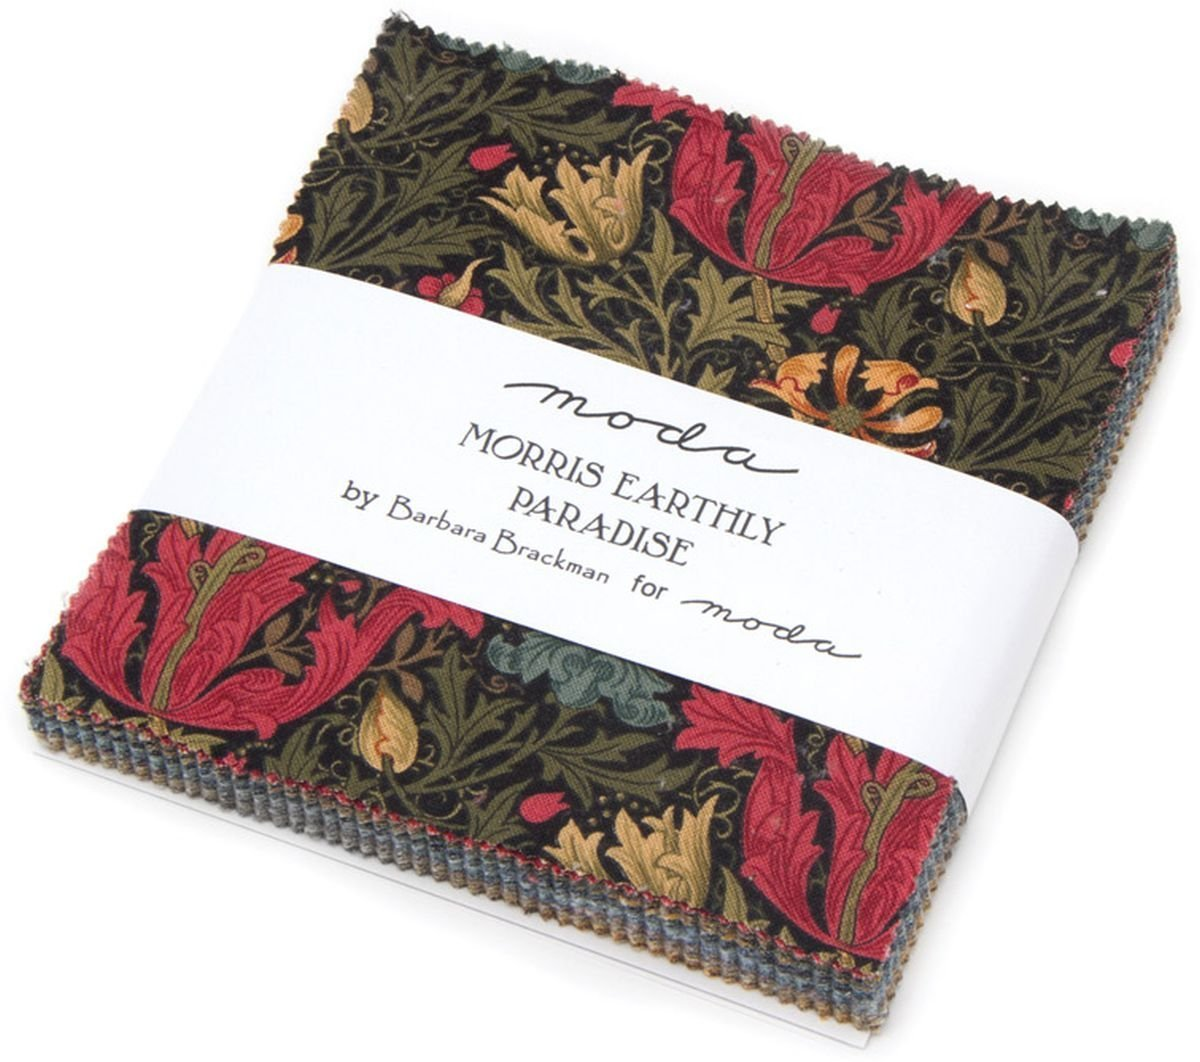 Morris Earthly Paradise Charm Pack by Barbara Brackman; 42-5 inch Precut Fabric Quilt Squares United Notions 8330PP